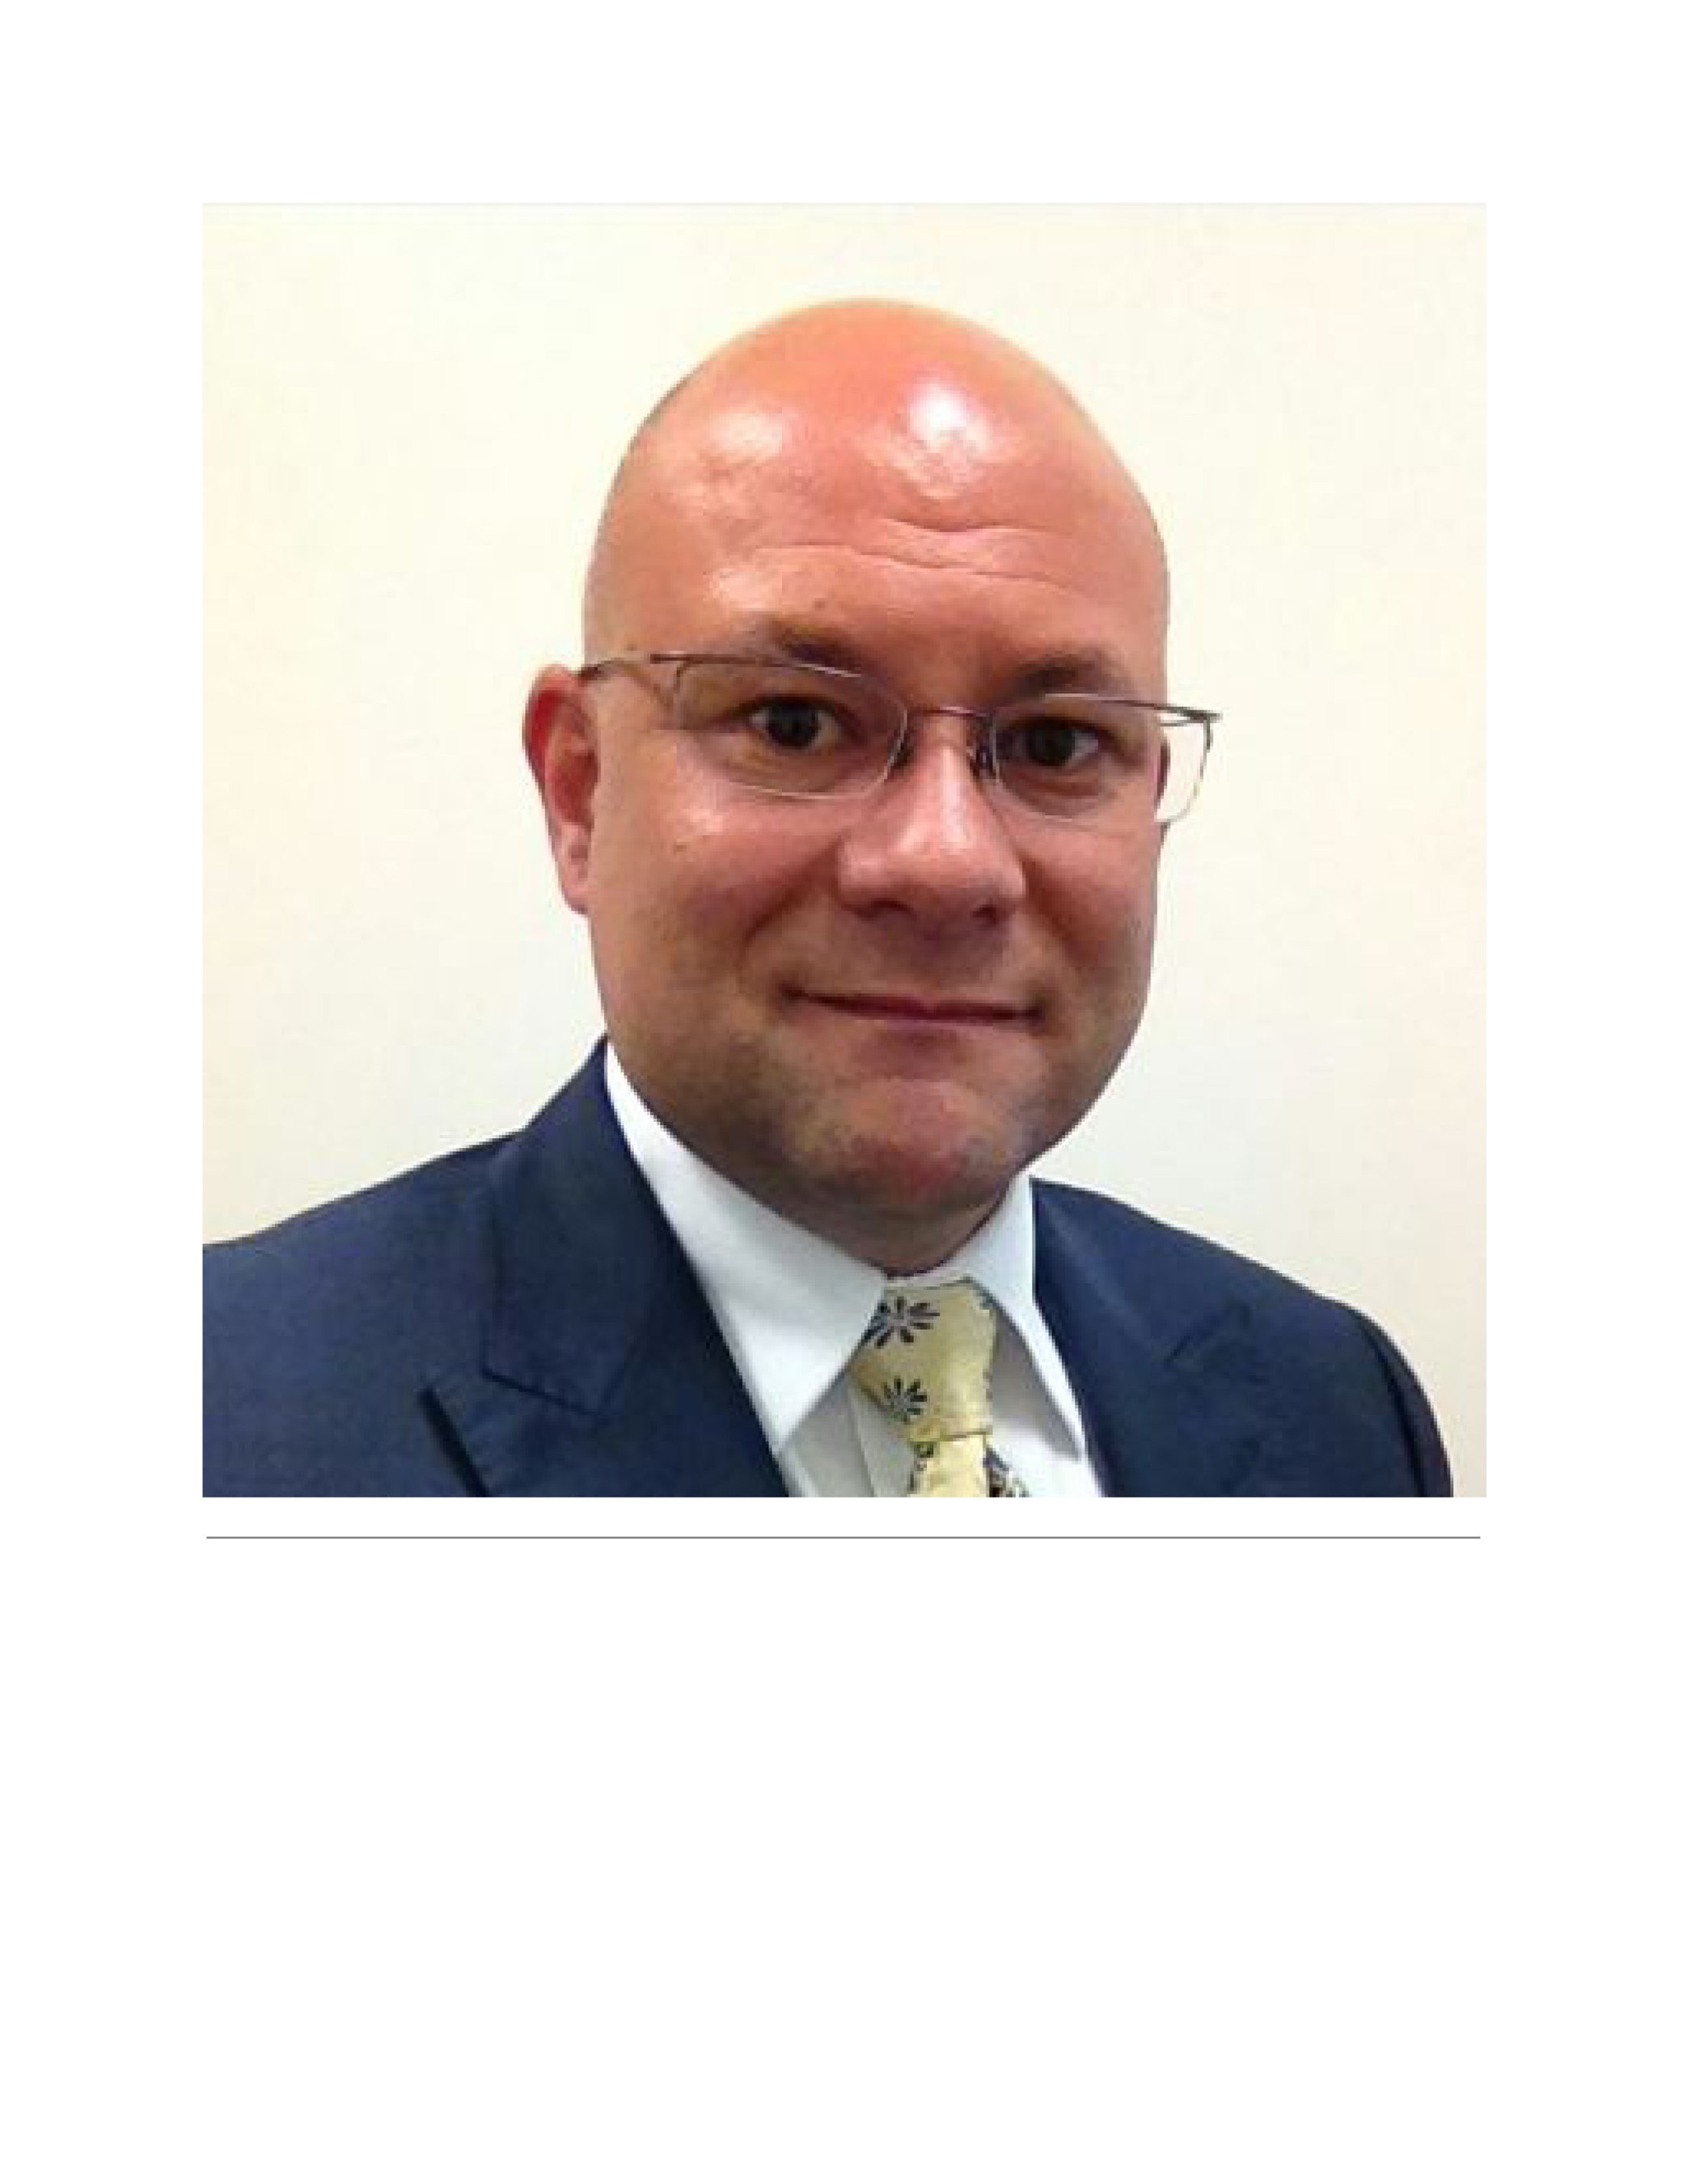 Engineering Services Network (ESN) Appoints Steve Dutra as Operations Manager of Charleston, SC